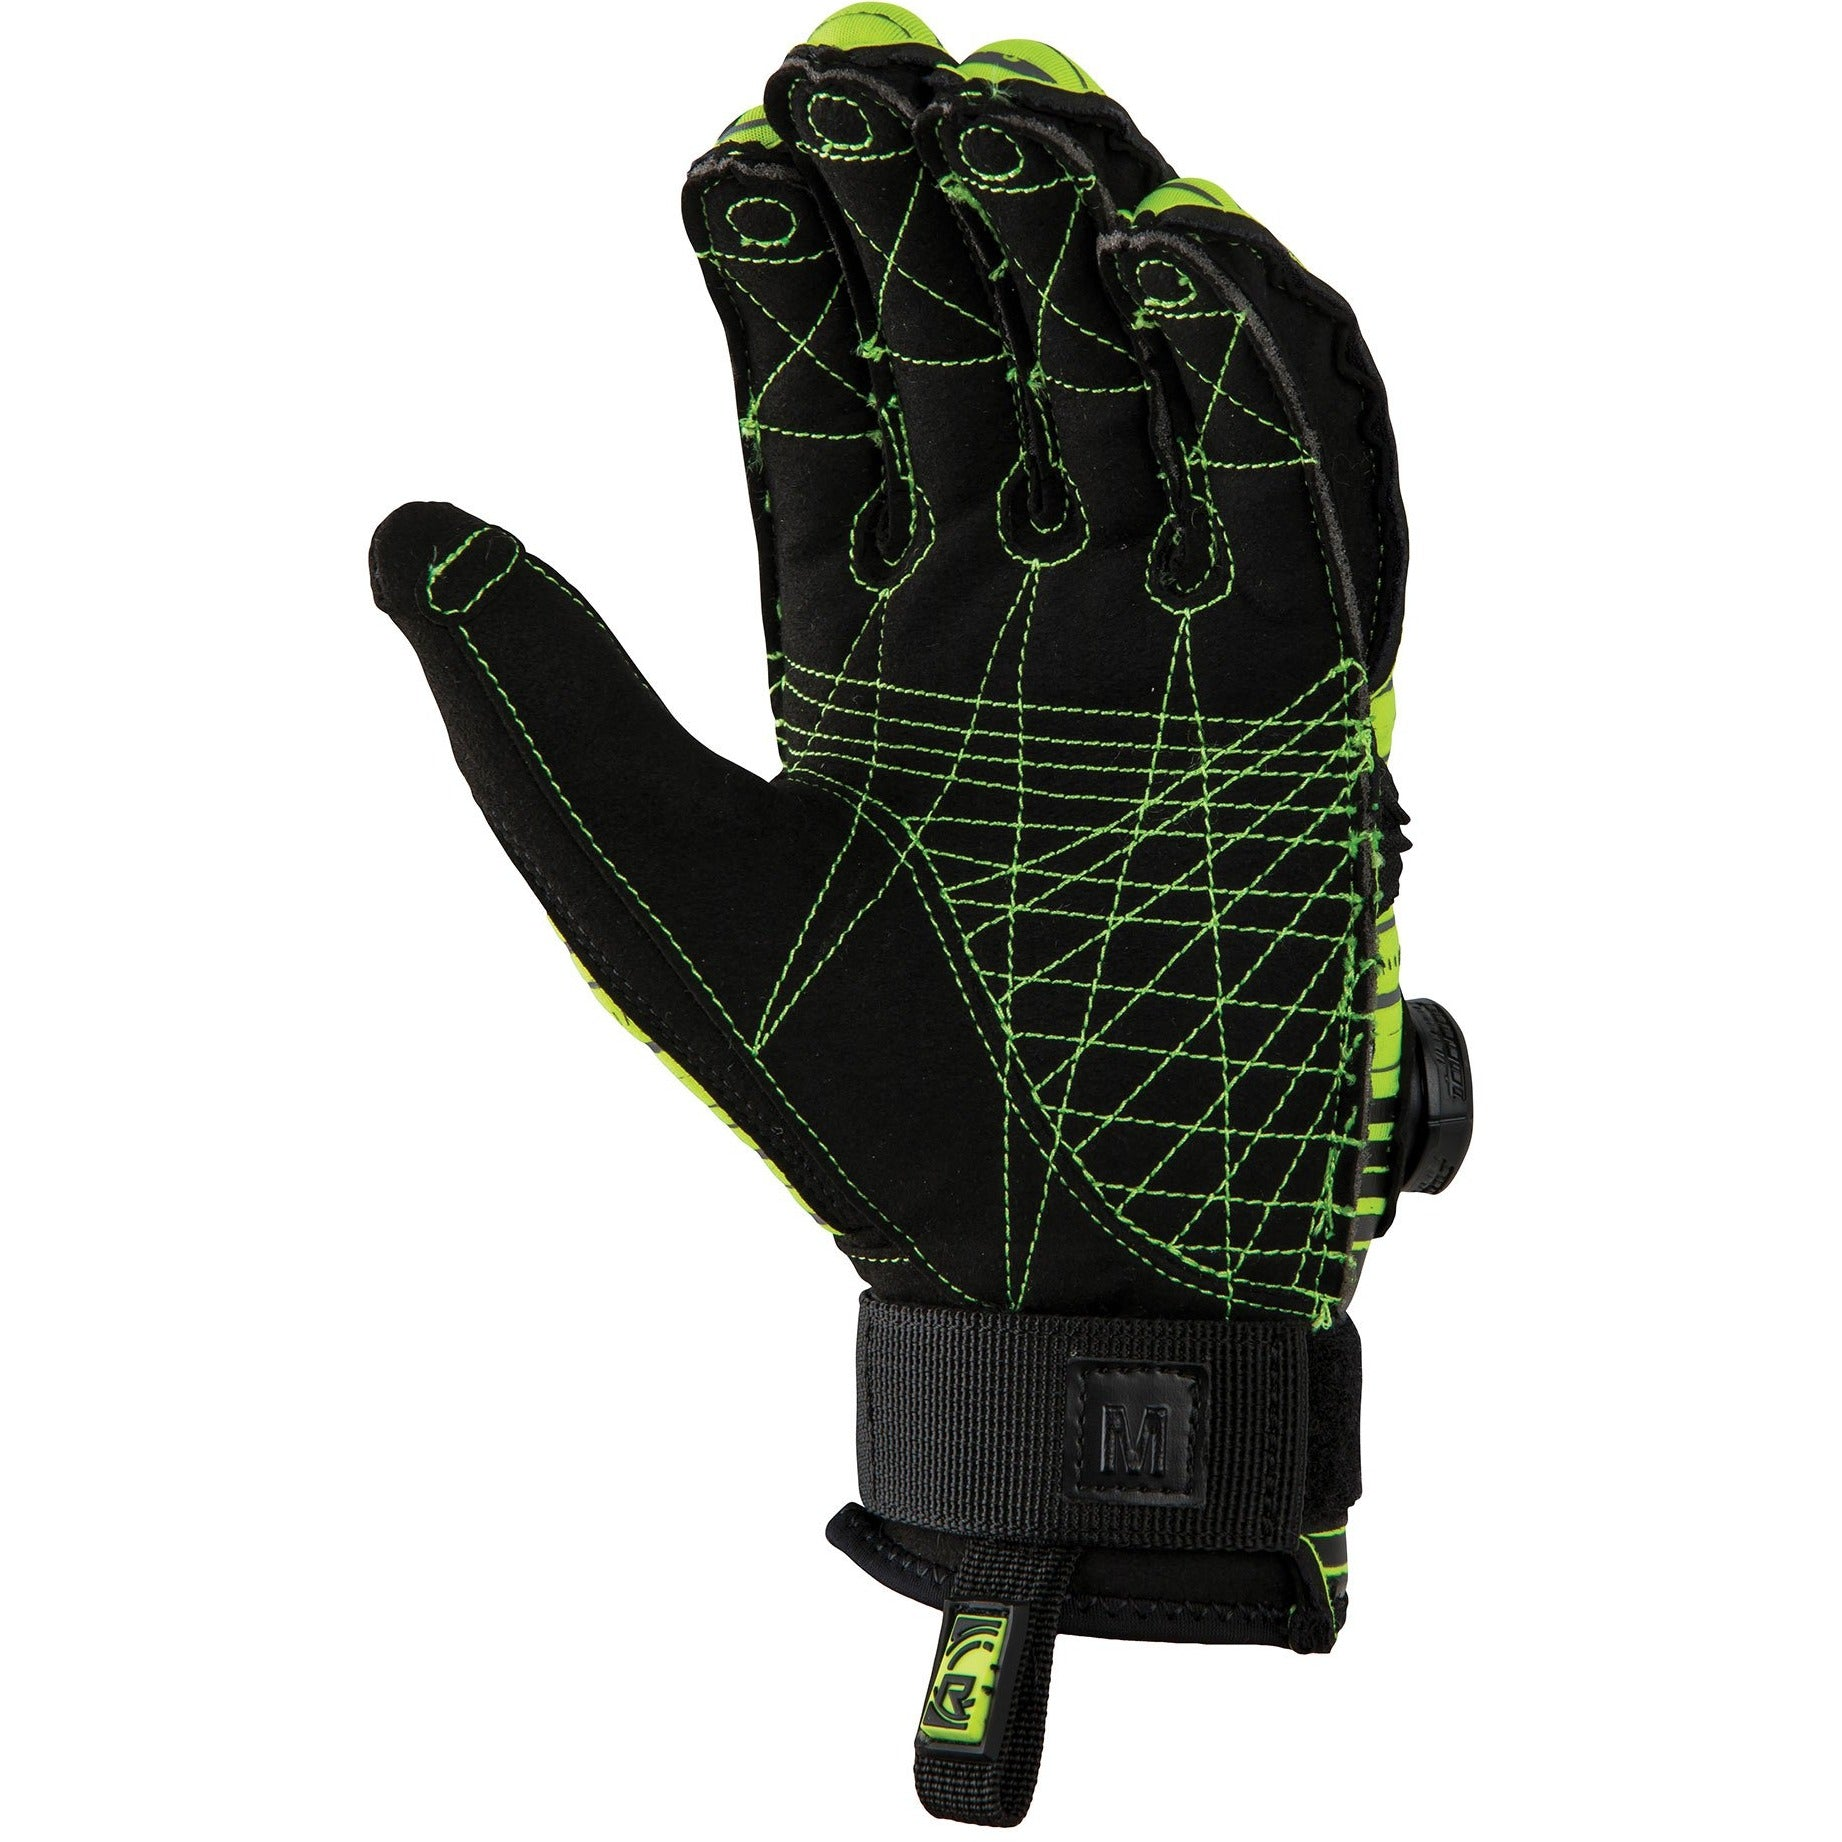 Radar Vapor BOA A Water Ski Glove 2018 - 88 Gear